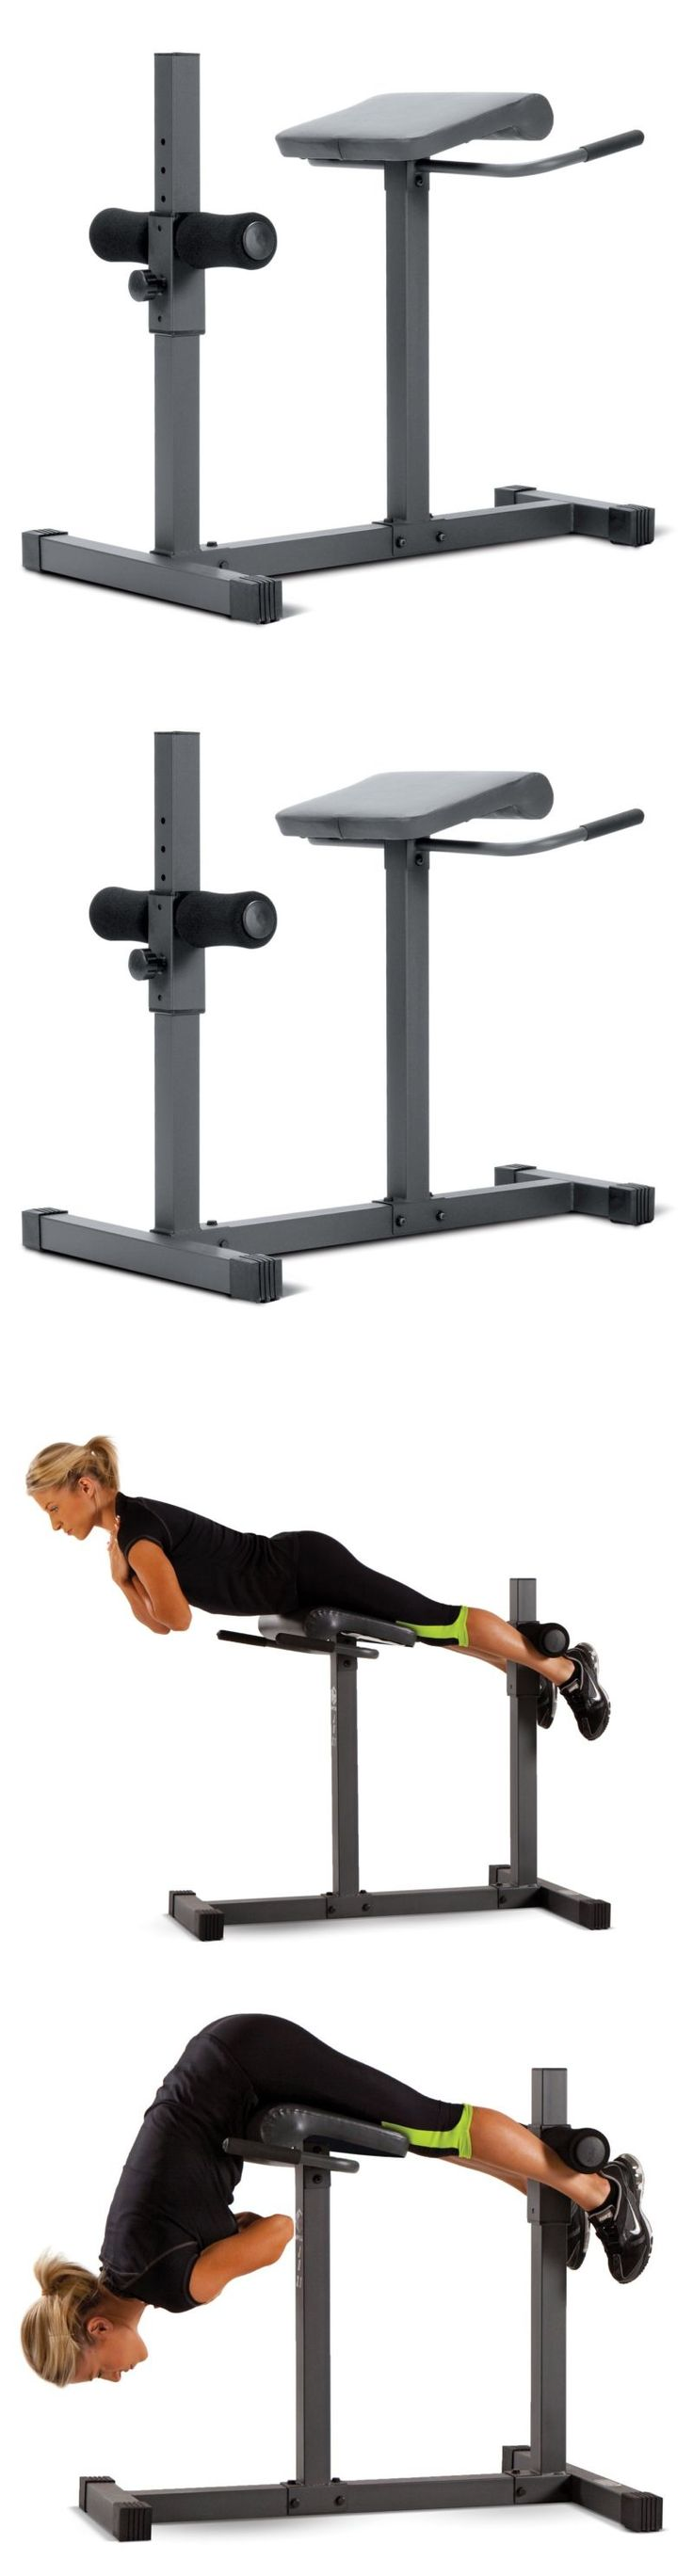 Abdominal Exercisers 15274: Marcy Roman Chair Hyperextension Bench -> BUY IT NOW ONLY: $111.35 on eBay!